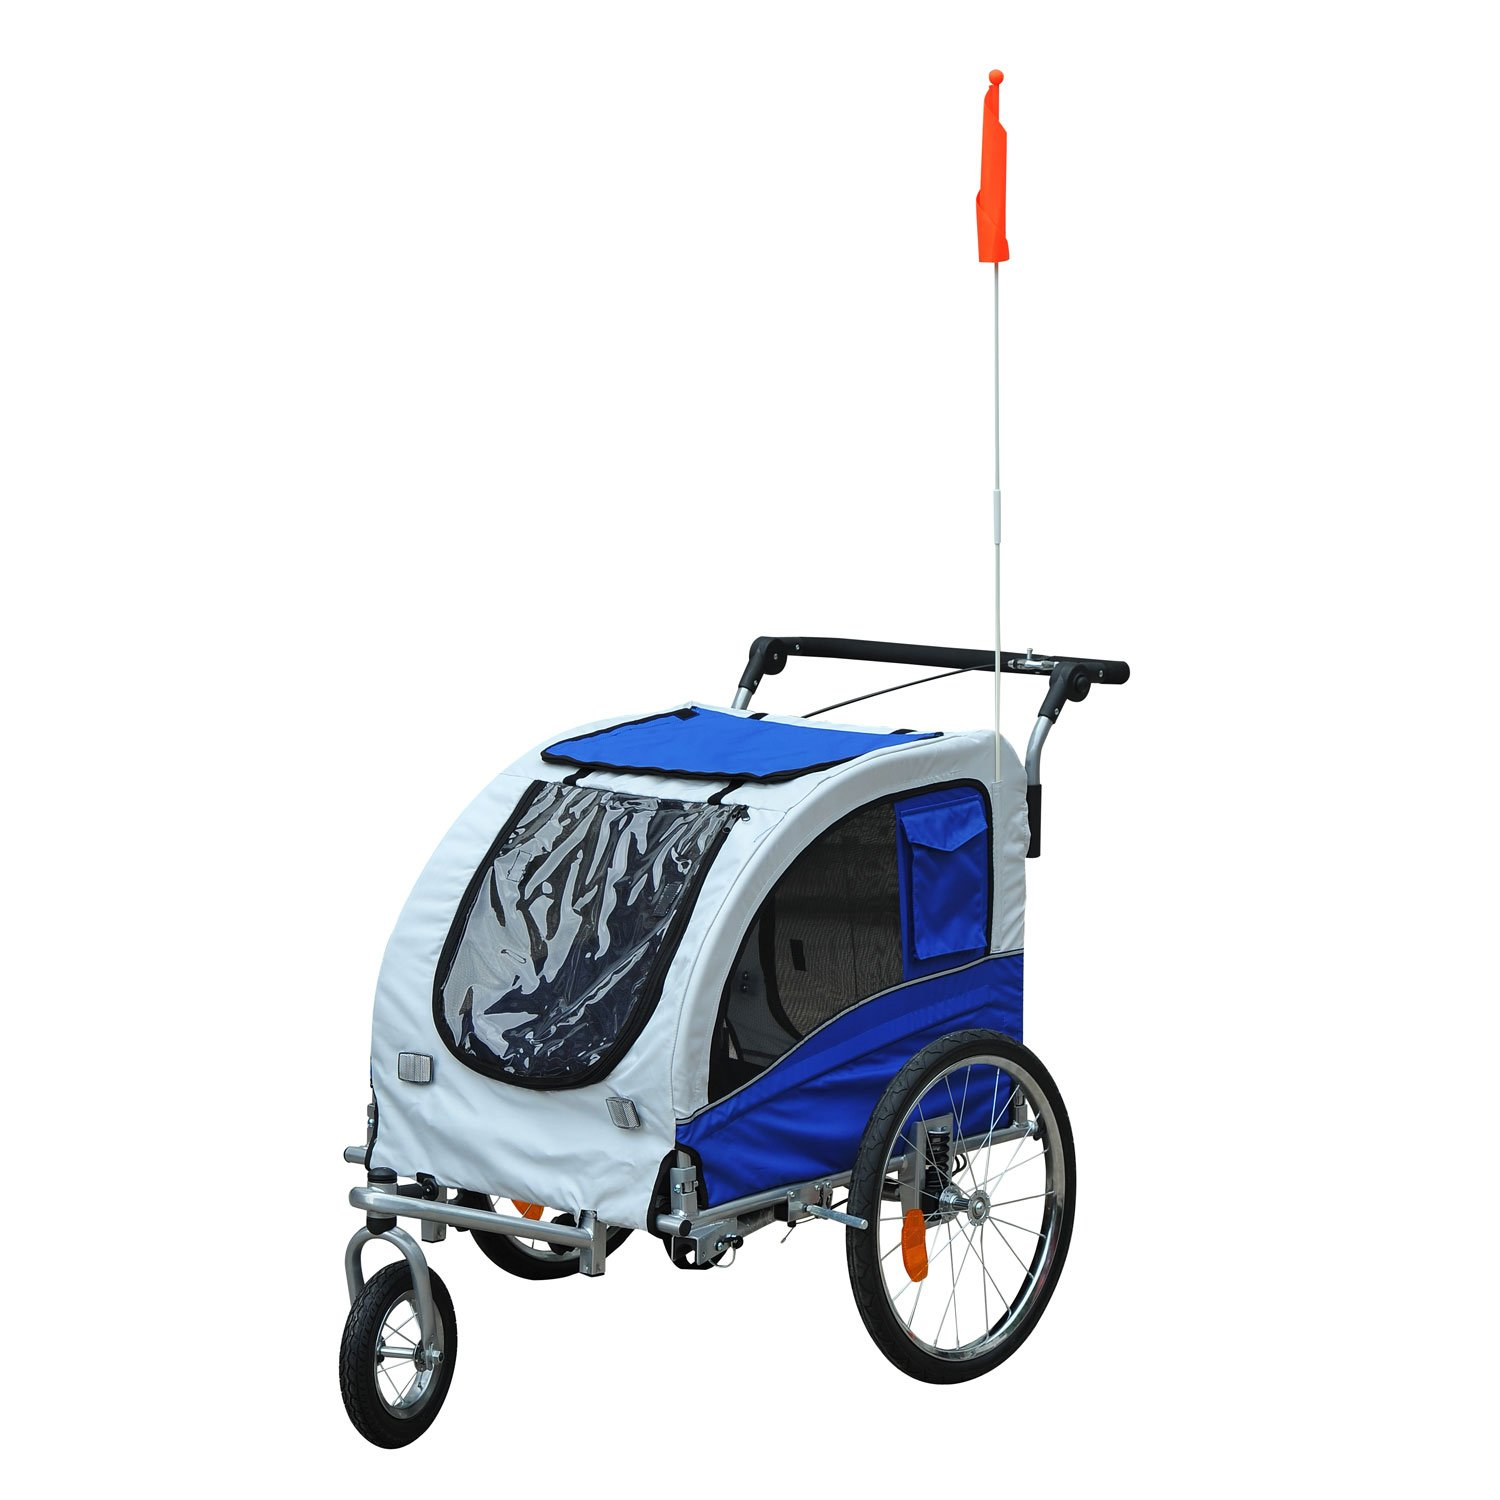 PawHut Durable Pet Dog Bicycle Trailer Stroller Jogger with Suspension bluee Grey